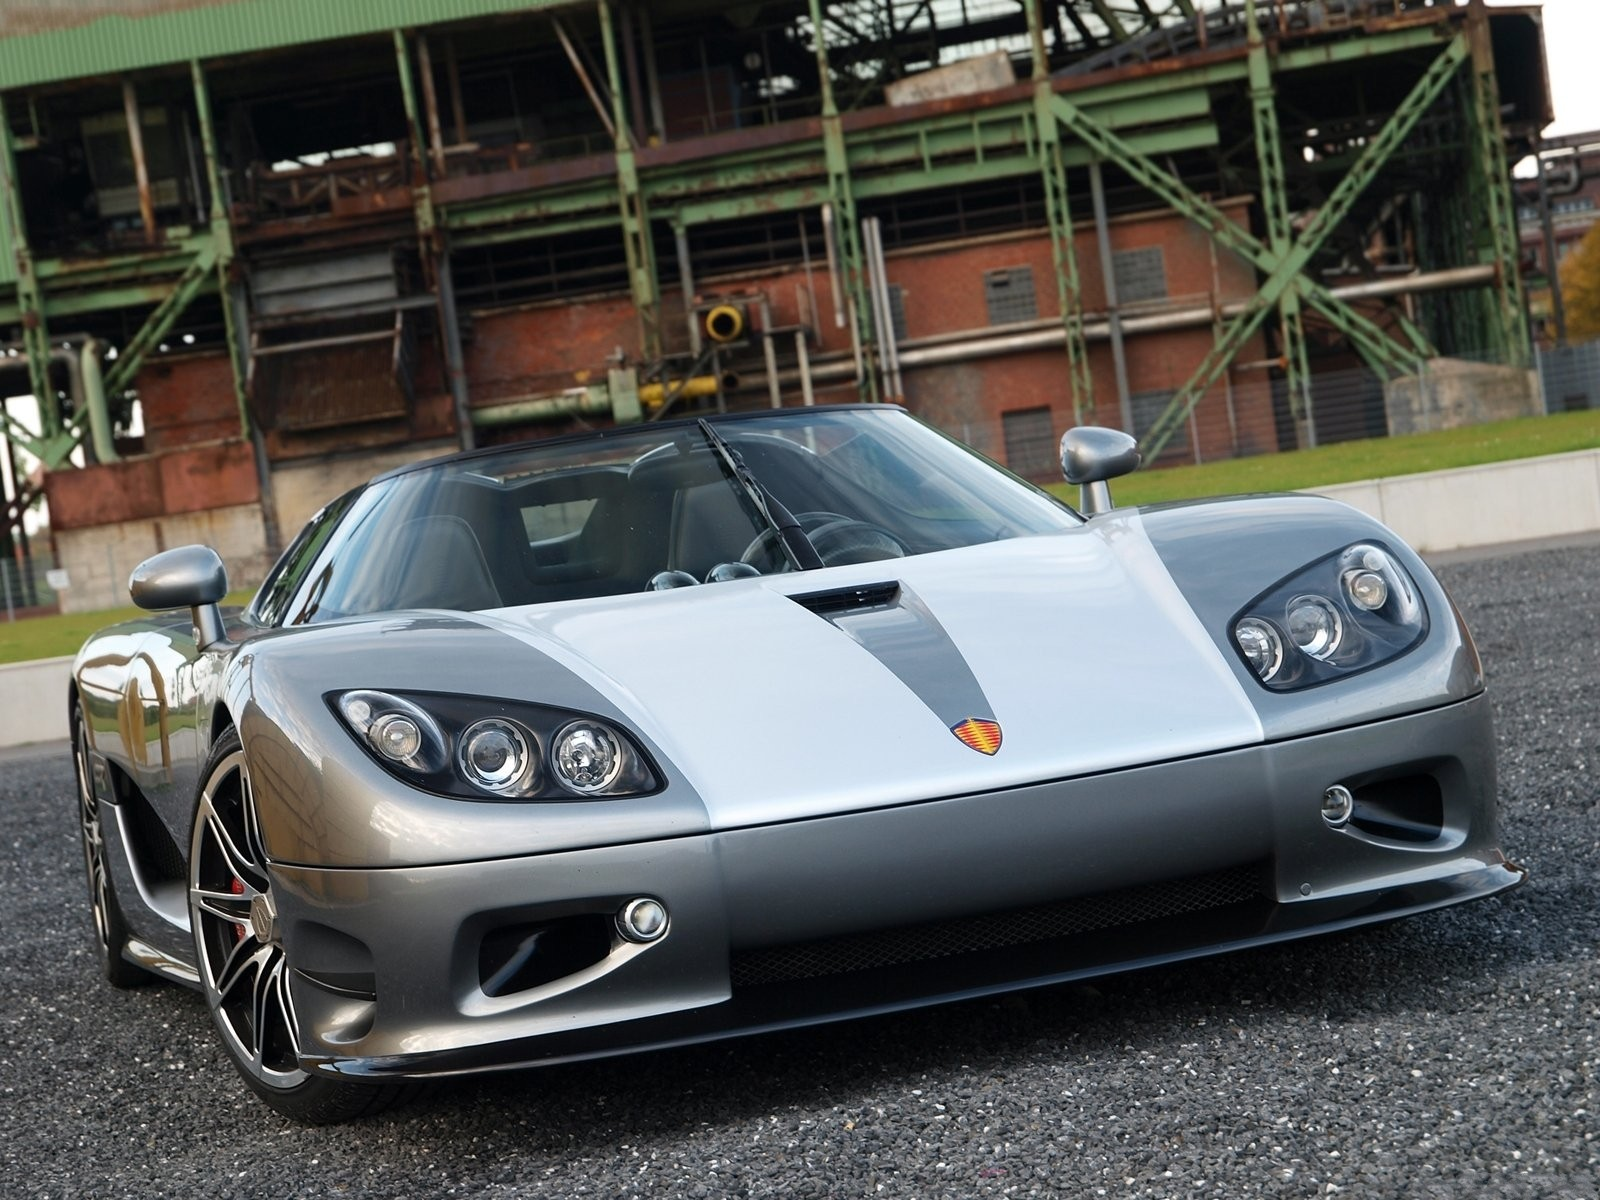 Koenigsegg Ccx Hd Wallpapers HD Wallpapers Pics 1600x1200